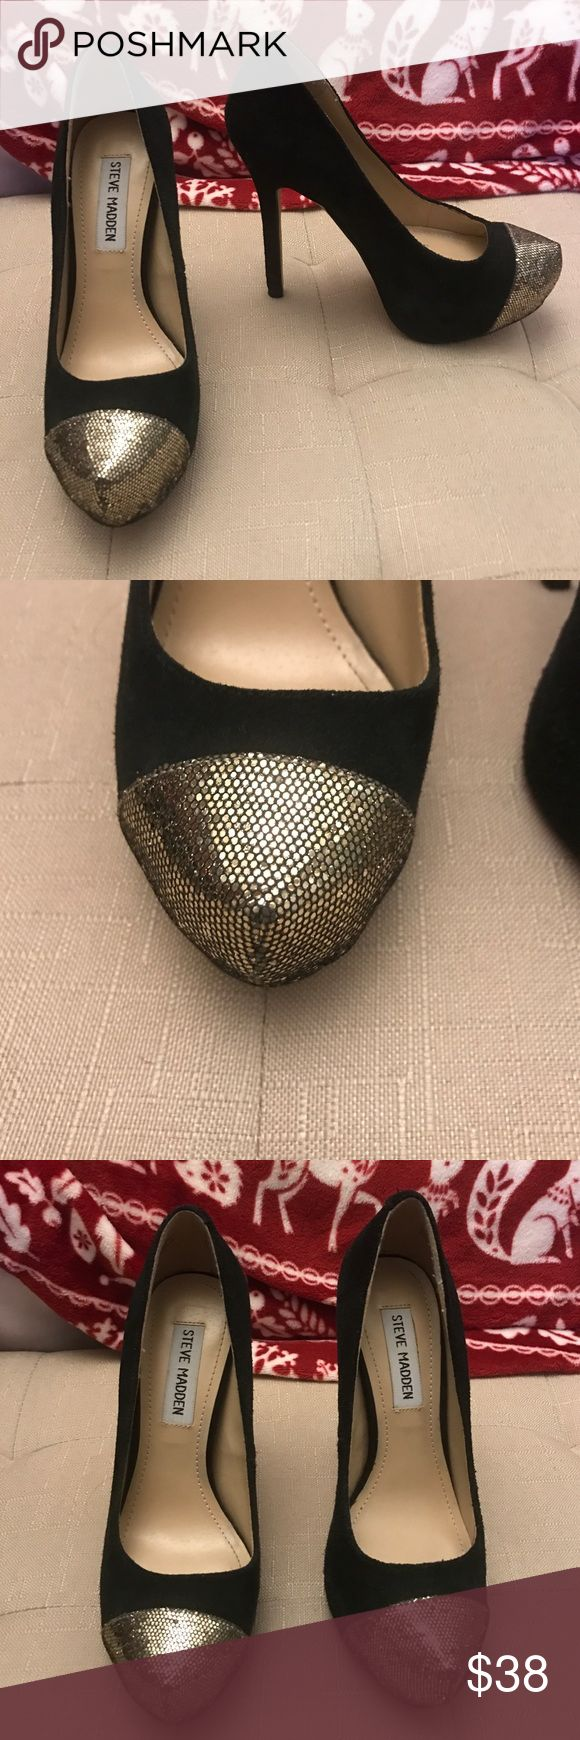 Amazing black heels! Steve Madden heels with an about 5in heel, they're black suede with a gold/silver toe so t can be worn with both! Comfortable give how high they are and wore only a few times! No scuffs on the suede, they're in great condition! Steve Madden Shoes Heels